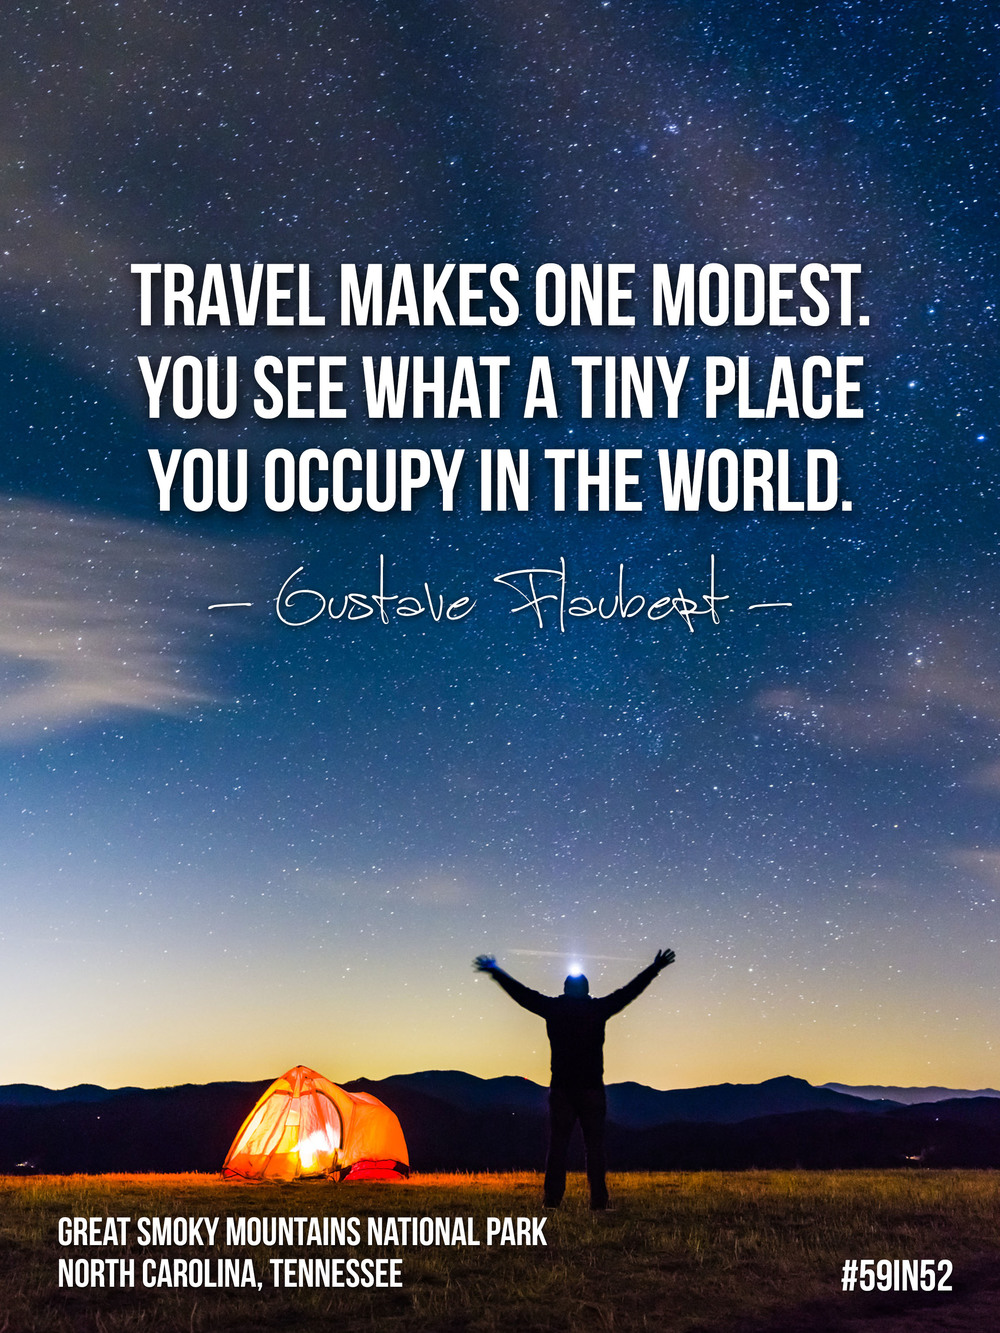 """Travel makes one modest. You see what a tiny place you occupy in the world."" -- Gustave Flaubert"